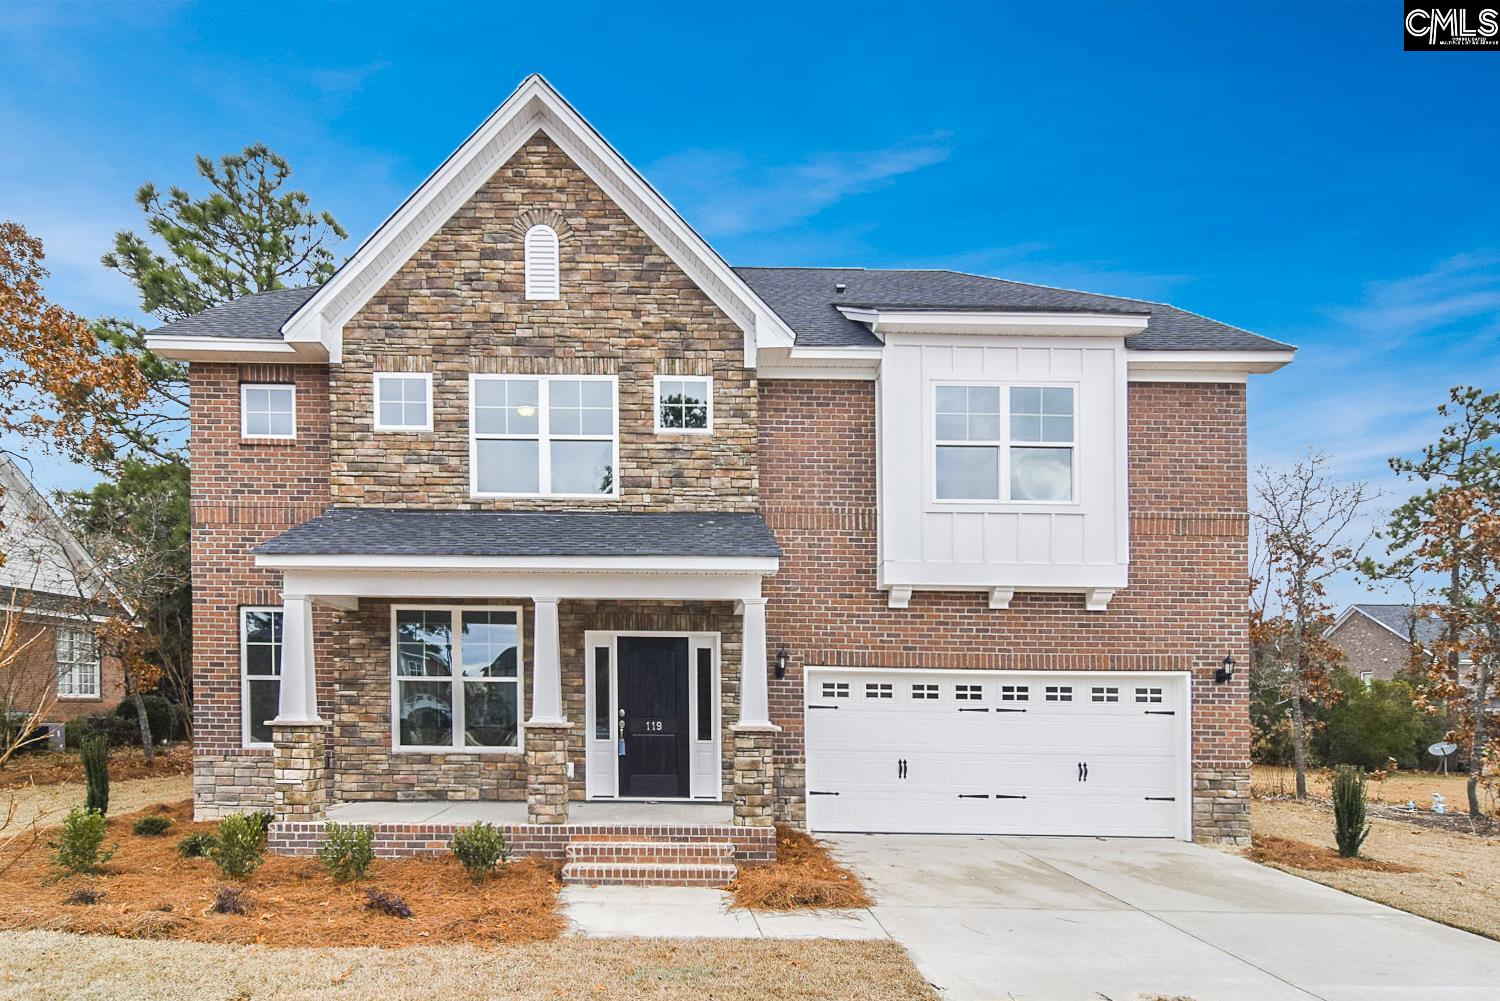 119 Windermere Village Way #4 Blythewood, SC 29016